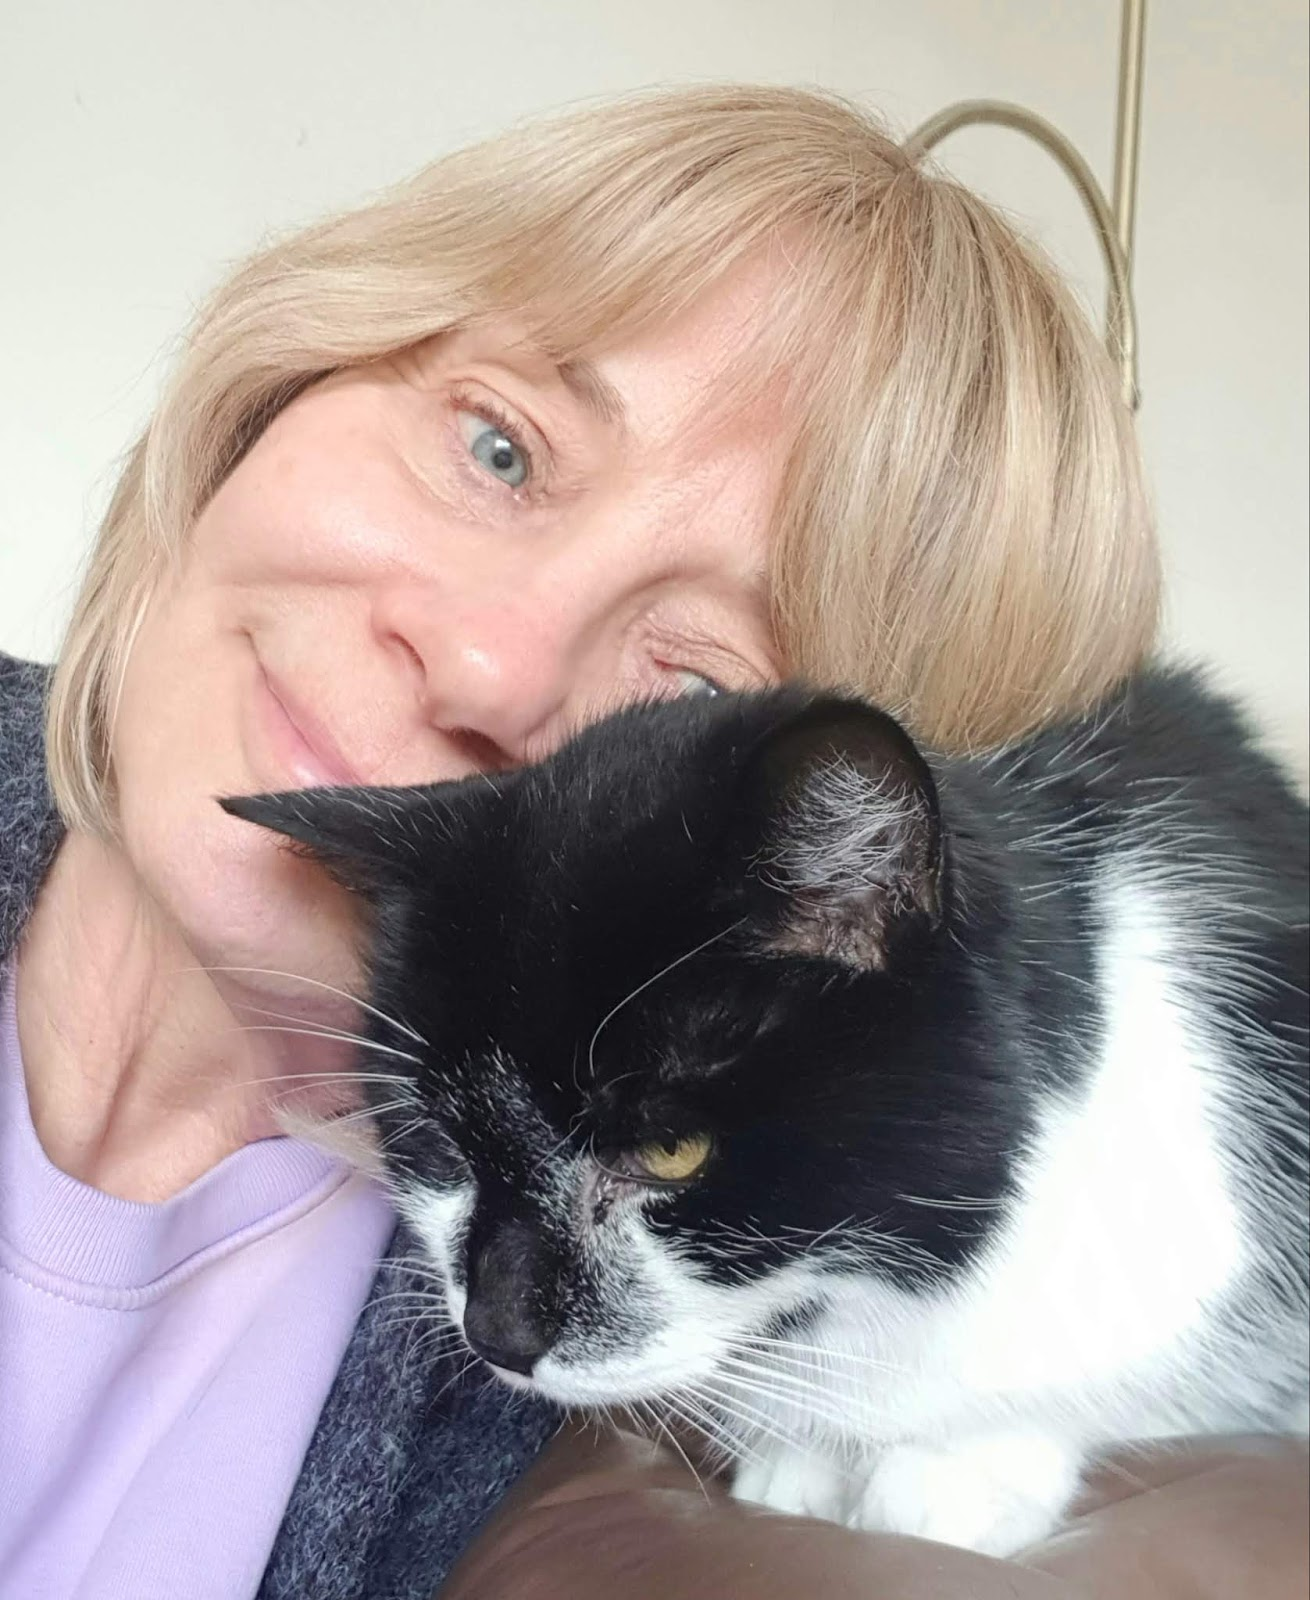 Over 50s style blogger Gail Hanlon with Molly the cat, aged 16